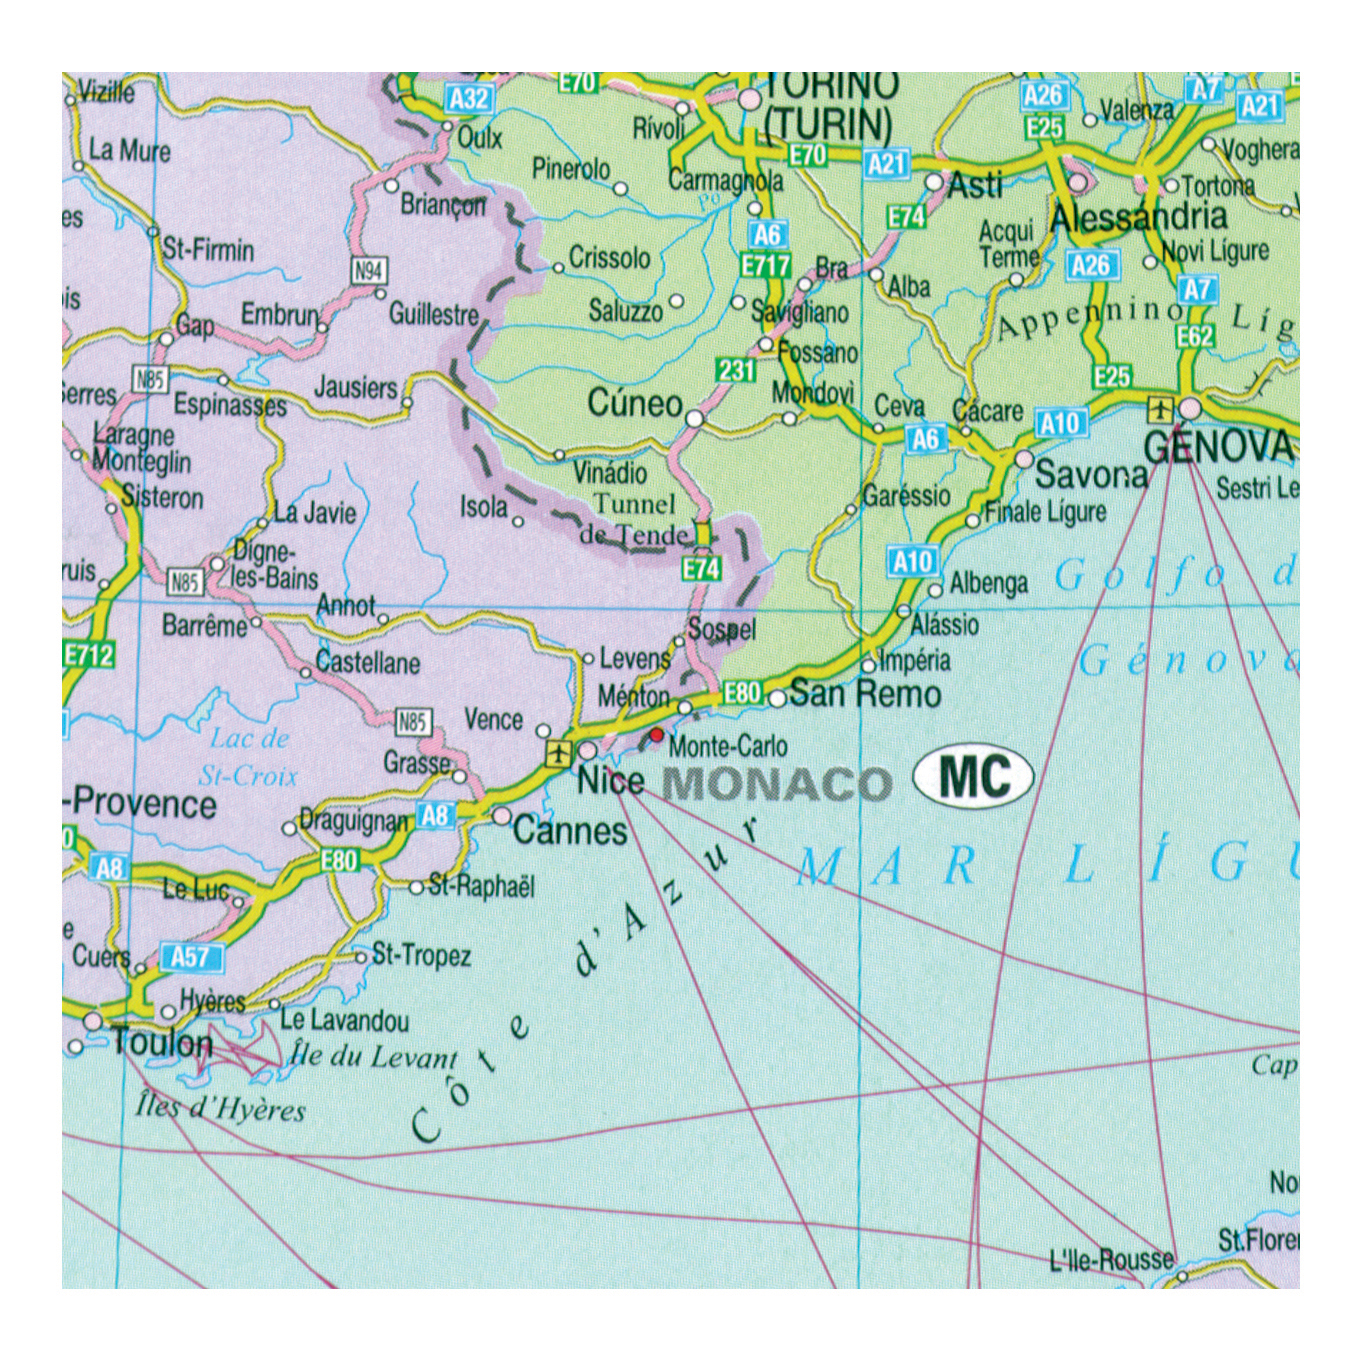 Map Marketing Europa Political Map Unframed 64 Miles to 1 inch Scale W1090xH930mm Ref EUR